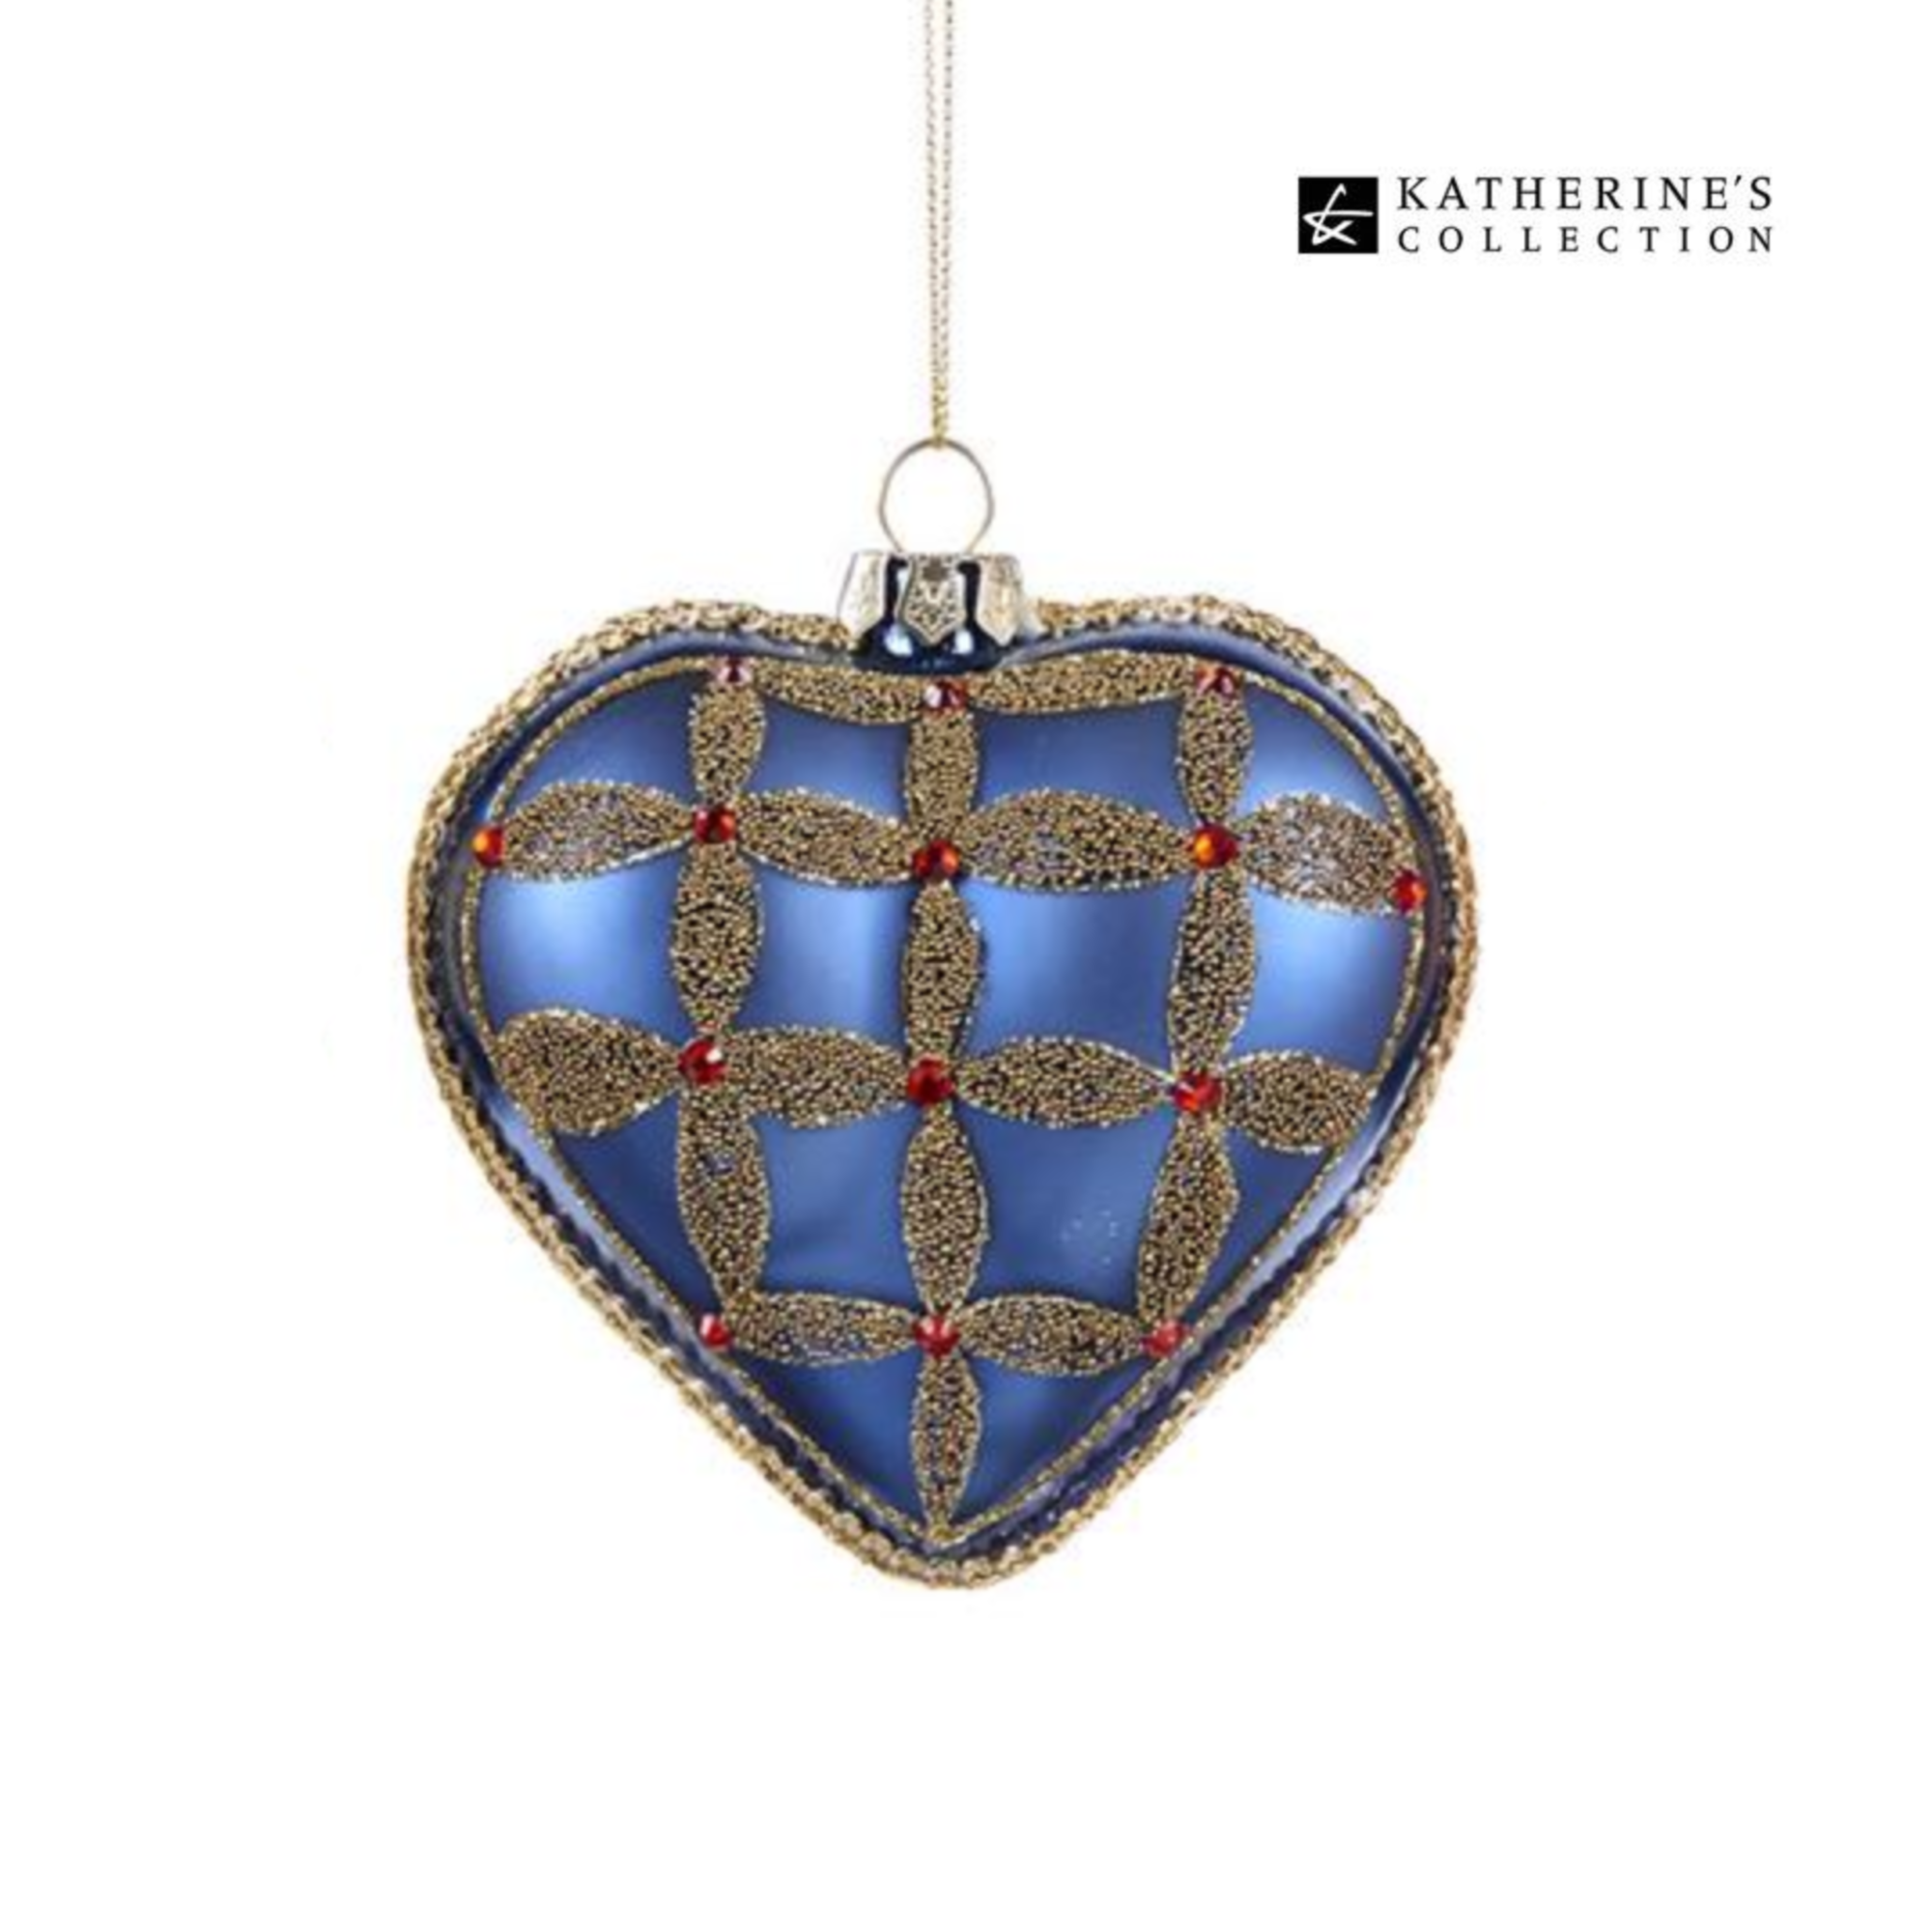 Katherines Collection Glass Royal Heart Ornaments